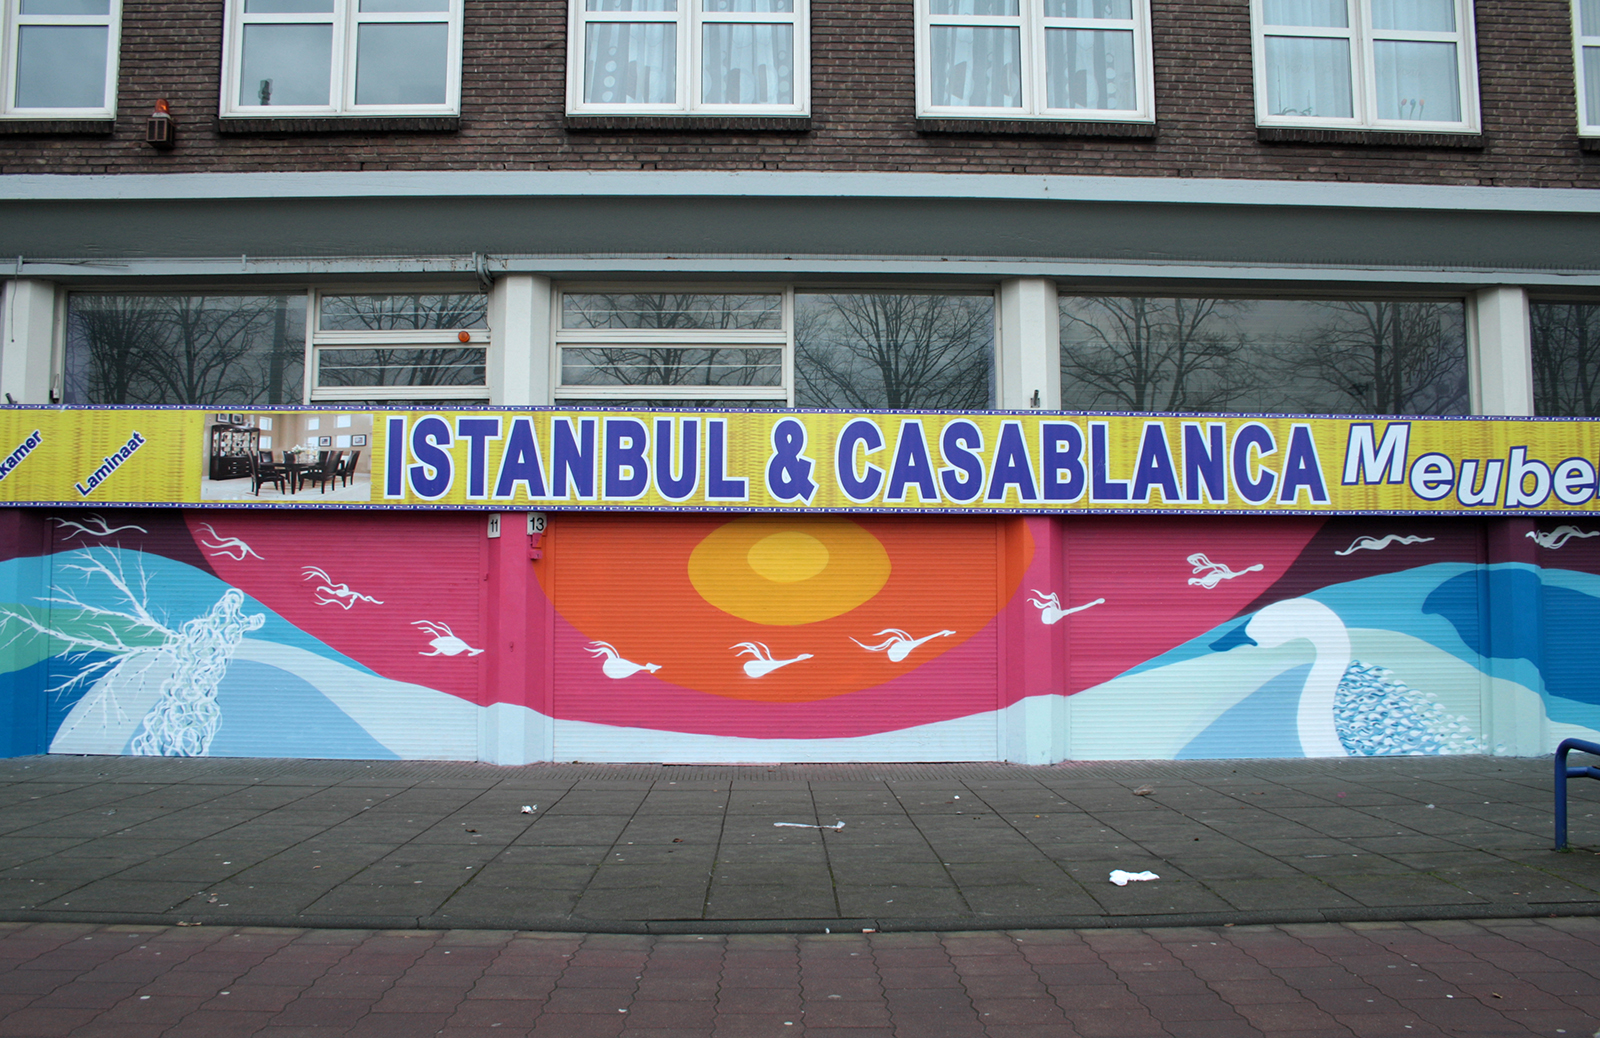 gola-hundun-4-seasons-new-mural-in-amsterdam-02